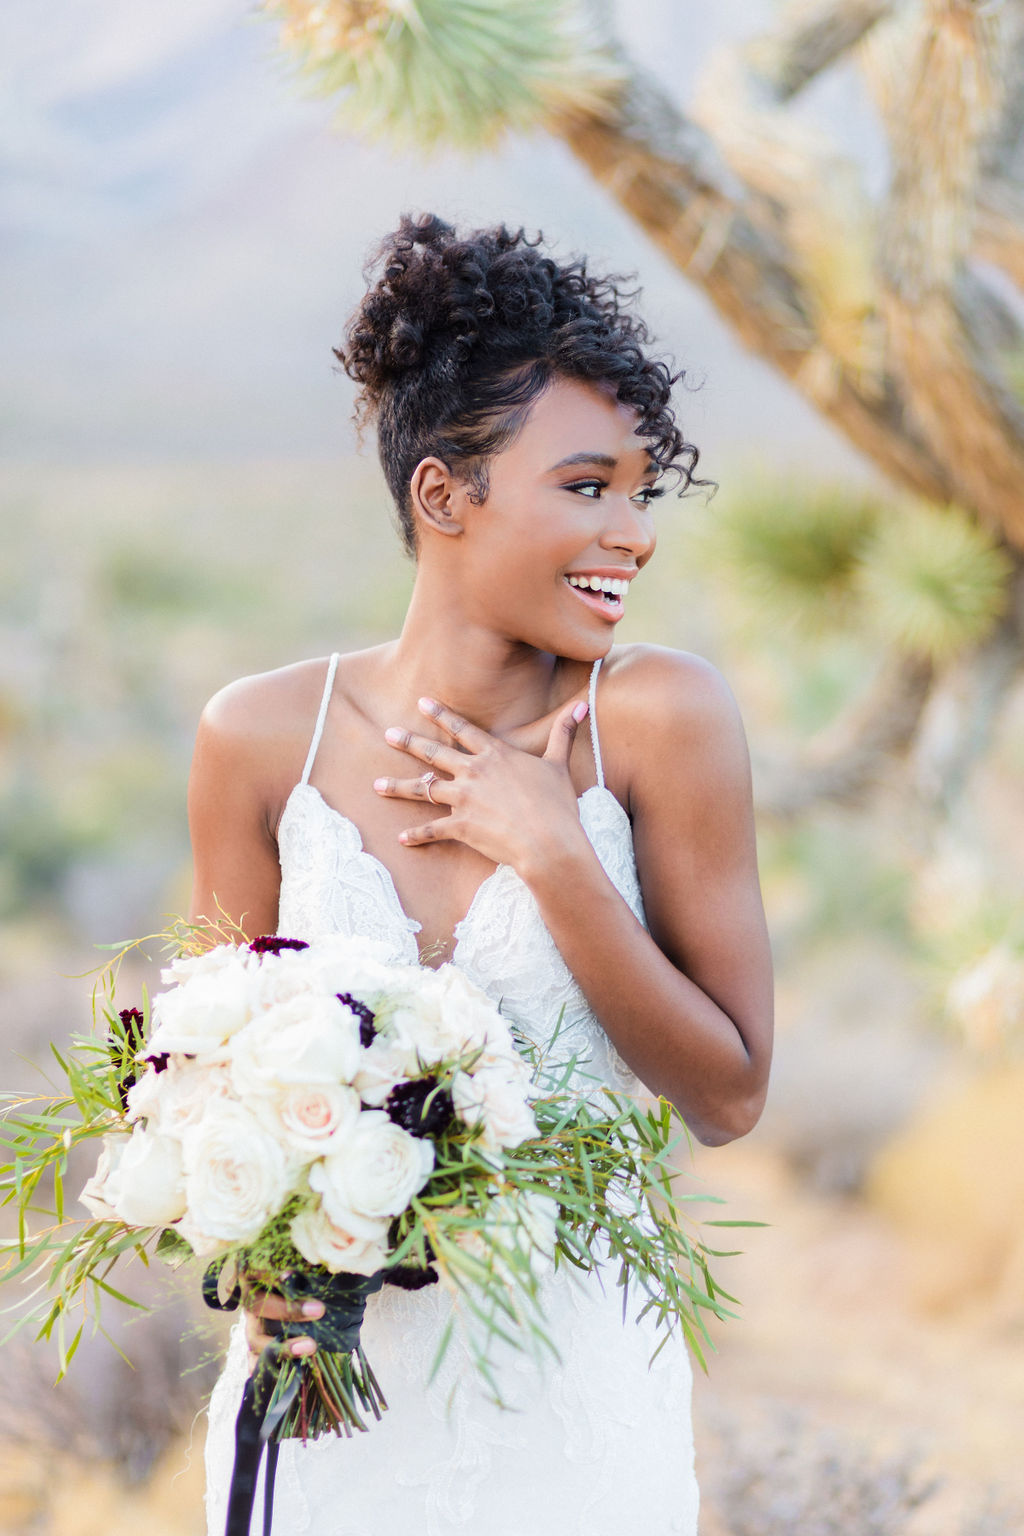 Natural Bridal Makeup Curly Hair Wedding Inspo Black And White Elizabeth Burgi Photography 1